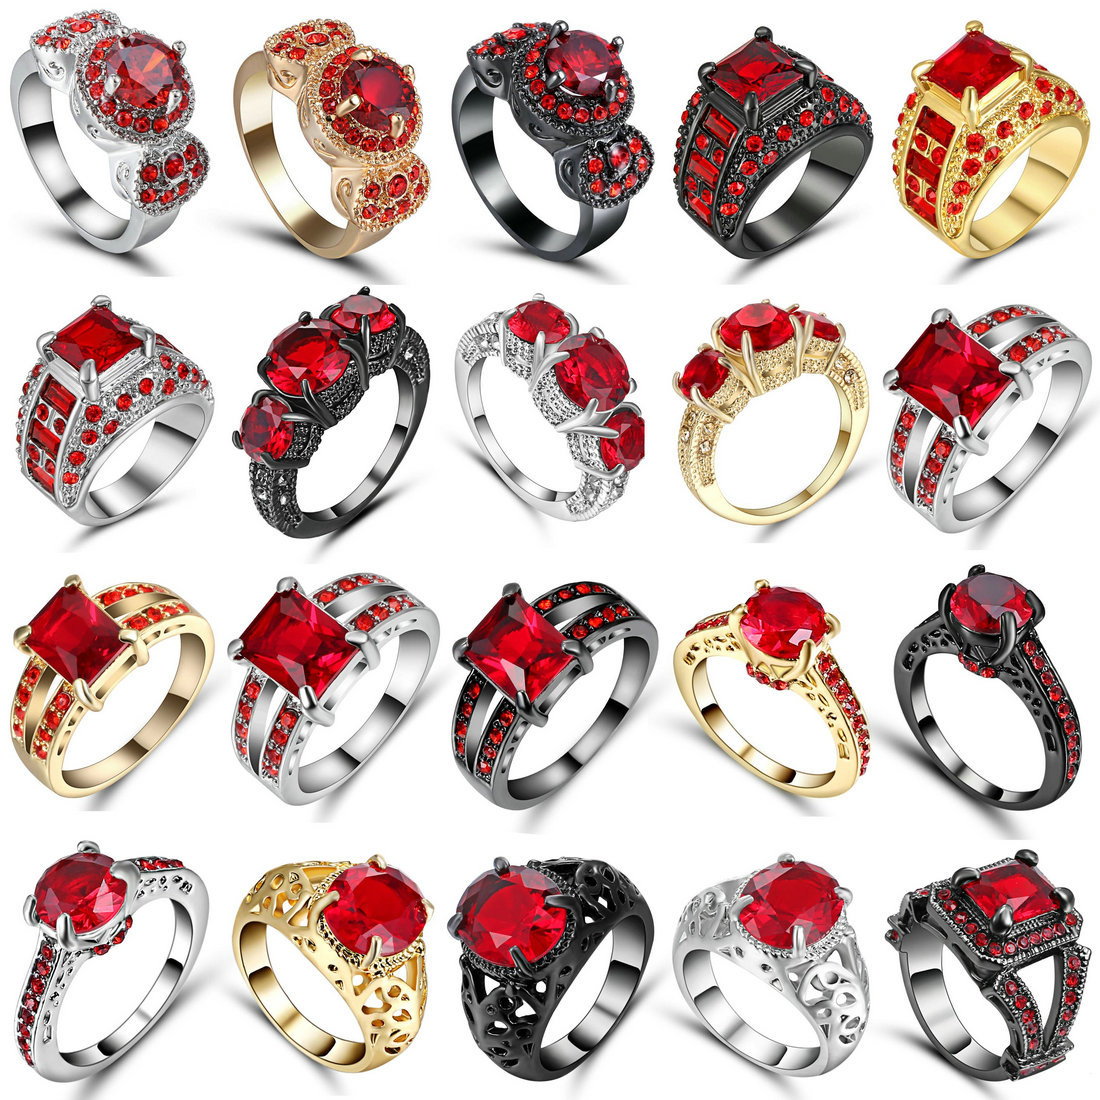 Female Red CZ Ring Fashion White & Black Gold Filled Jewelry Vintage Wedding Rings For Women Birthday Stone Gifts Size 6